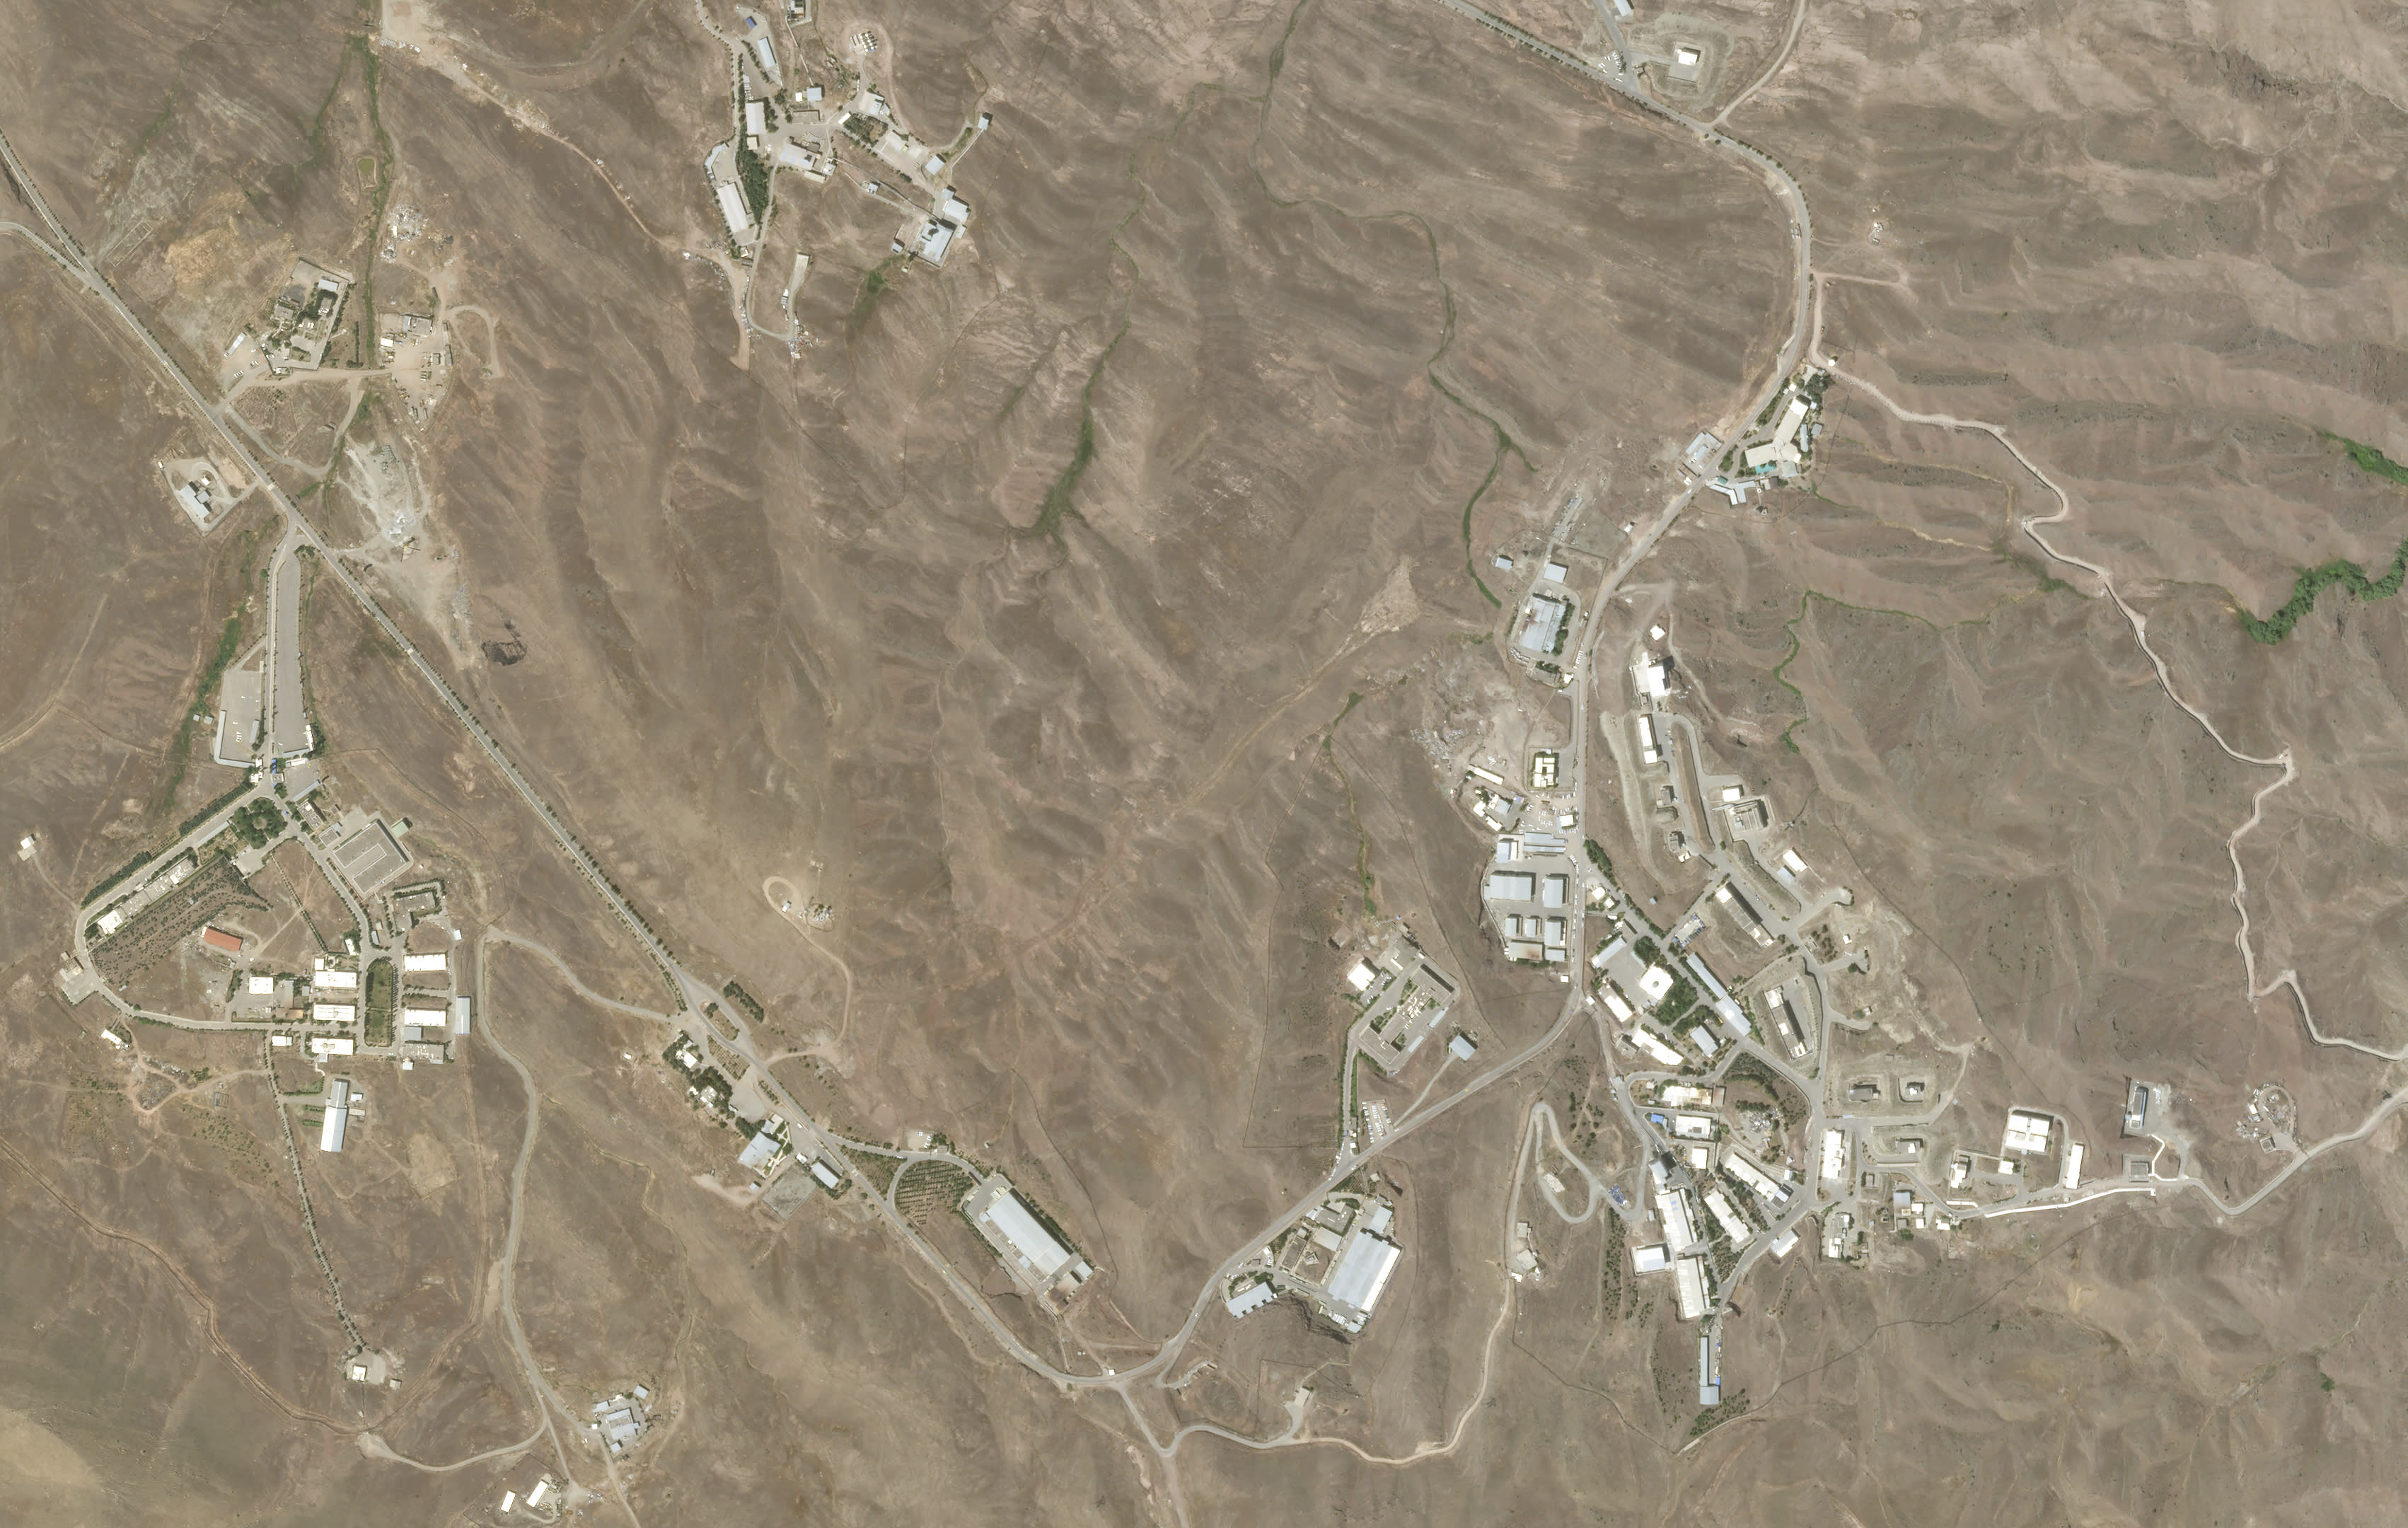 This June 10, 2020, satellite image from Planet Labs shows the site of a June 26, 2020 explosion that rattled Iran's capital before the blast. Analysts say the blast came from an area in Tehran's eastern mountains they hides a underground tunnel system and missile production sites. The explosion appears to have charred hundreds of meters of scrubland. (Planet Labs via AP)